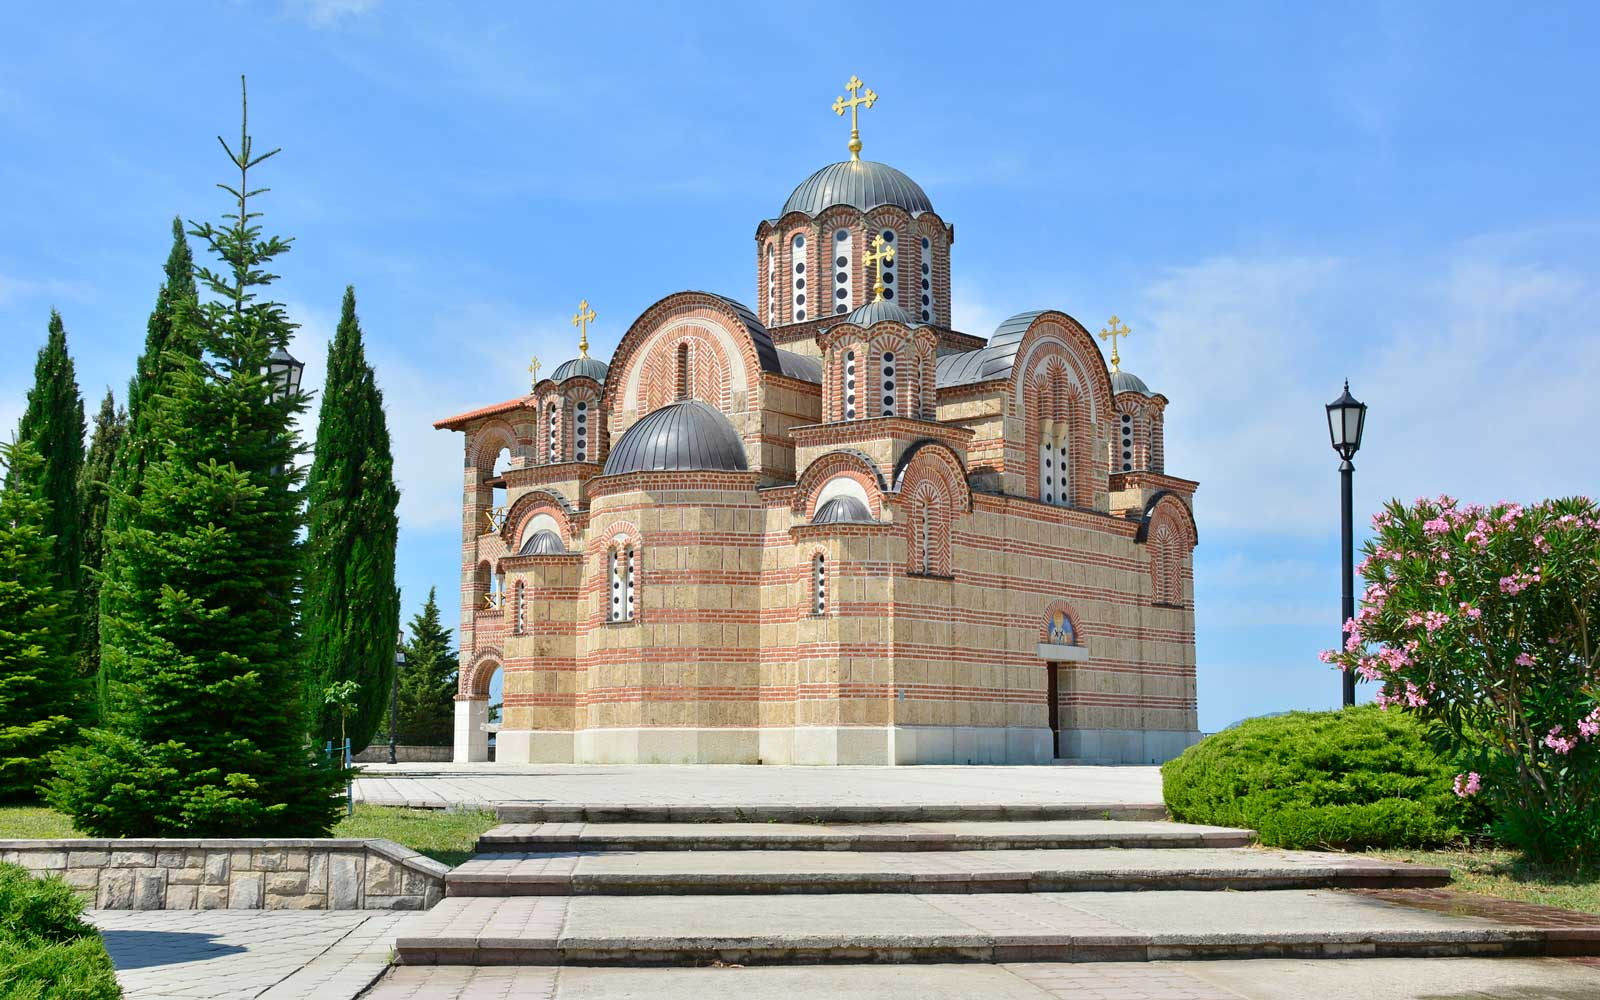 The Hercegovacka Gracanica Monastery on Crkvina Hill above Trebinje in Bosnia